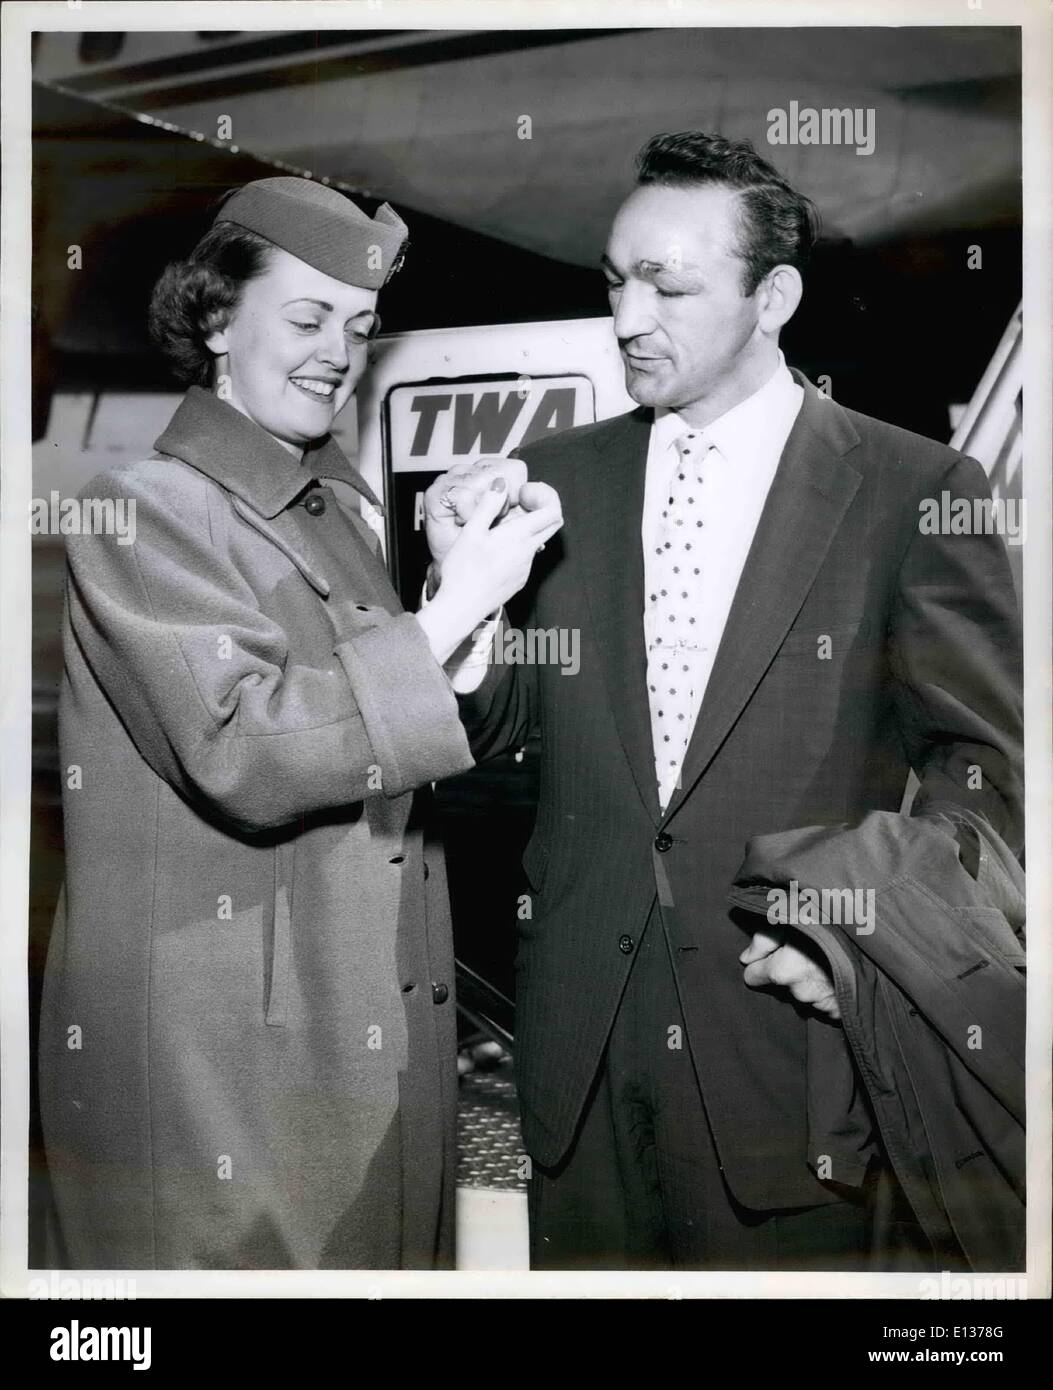 Feb. 29, 2012 - Idlewild Airport, N.Y. Nov. 5 Bosing's Middleweight Champion Carmen Basilio Impresses TWA Hostess Luayine Ohnstad with a huge fist on his arrival here today via TWA from Los Angeles. He attended the opening of IRV Noren's bowling alley in Pasadena last weekend. The former Yankee outfielder, Now with the cardinals, and carmin, are old friends. - Stock Image